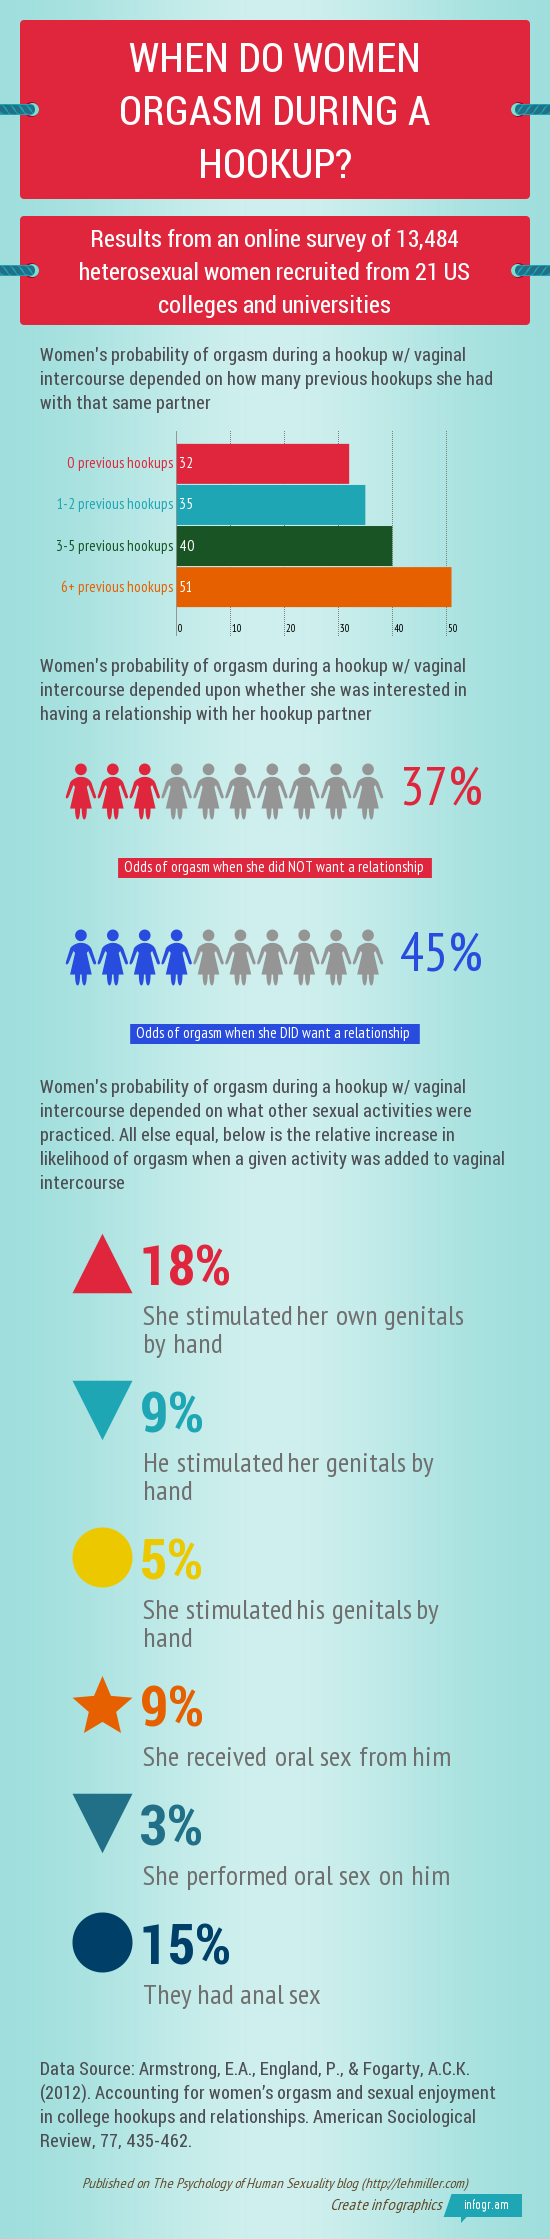 when-do-women-orgasm-during-hookups-infographic.png